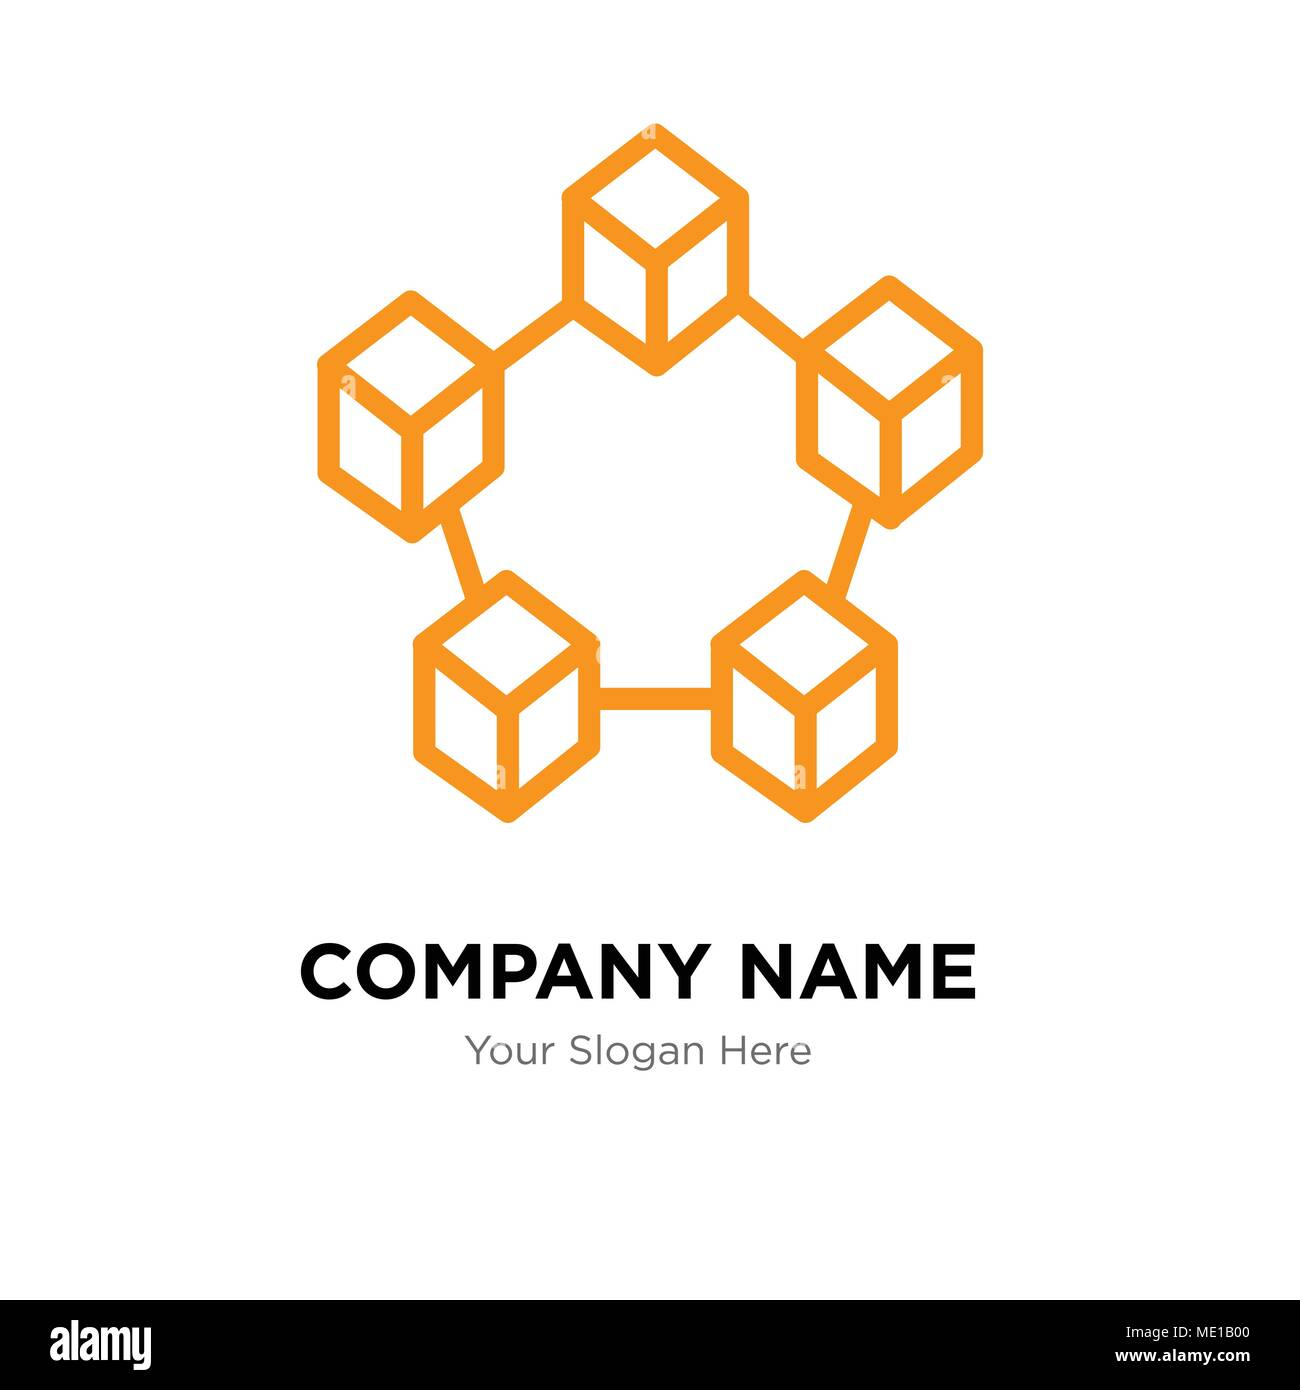 Data interconnected company logo design template, Business corporate vector icon - Stock Image